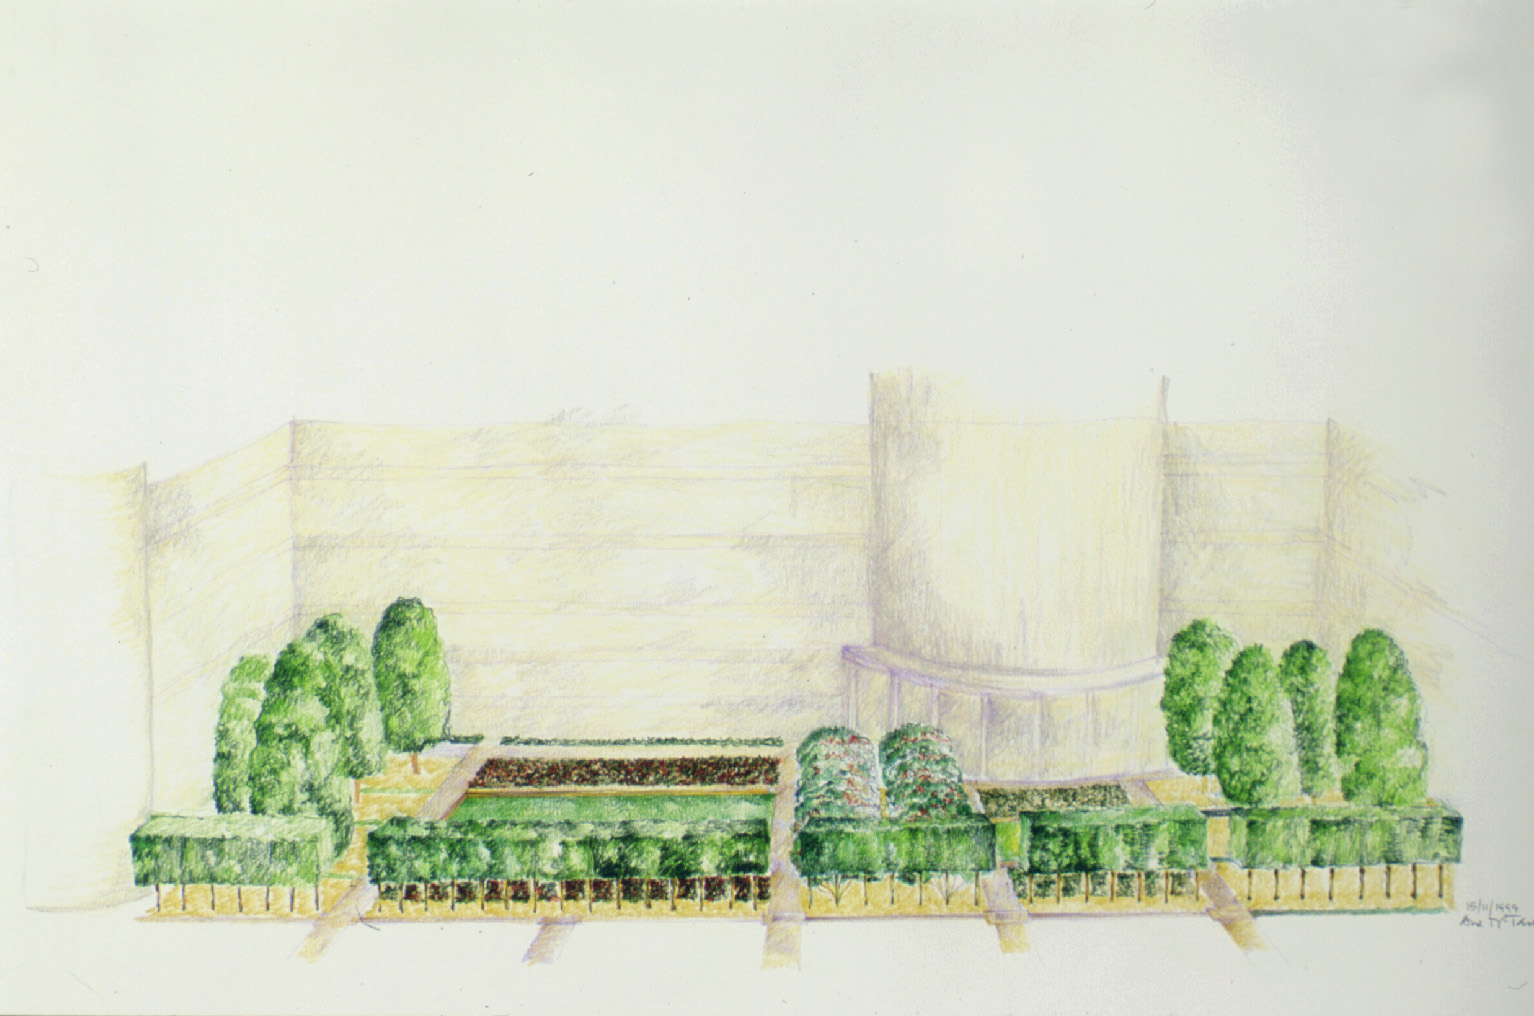 BA_lernercenter_drawing1.jpg